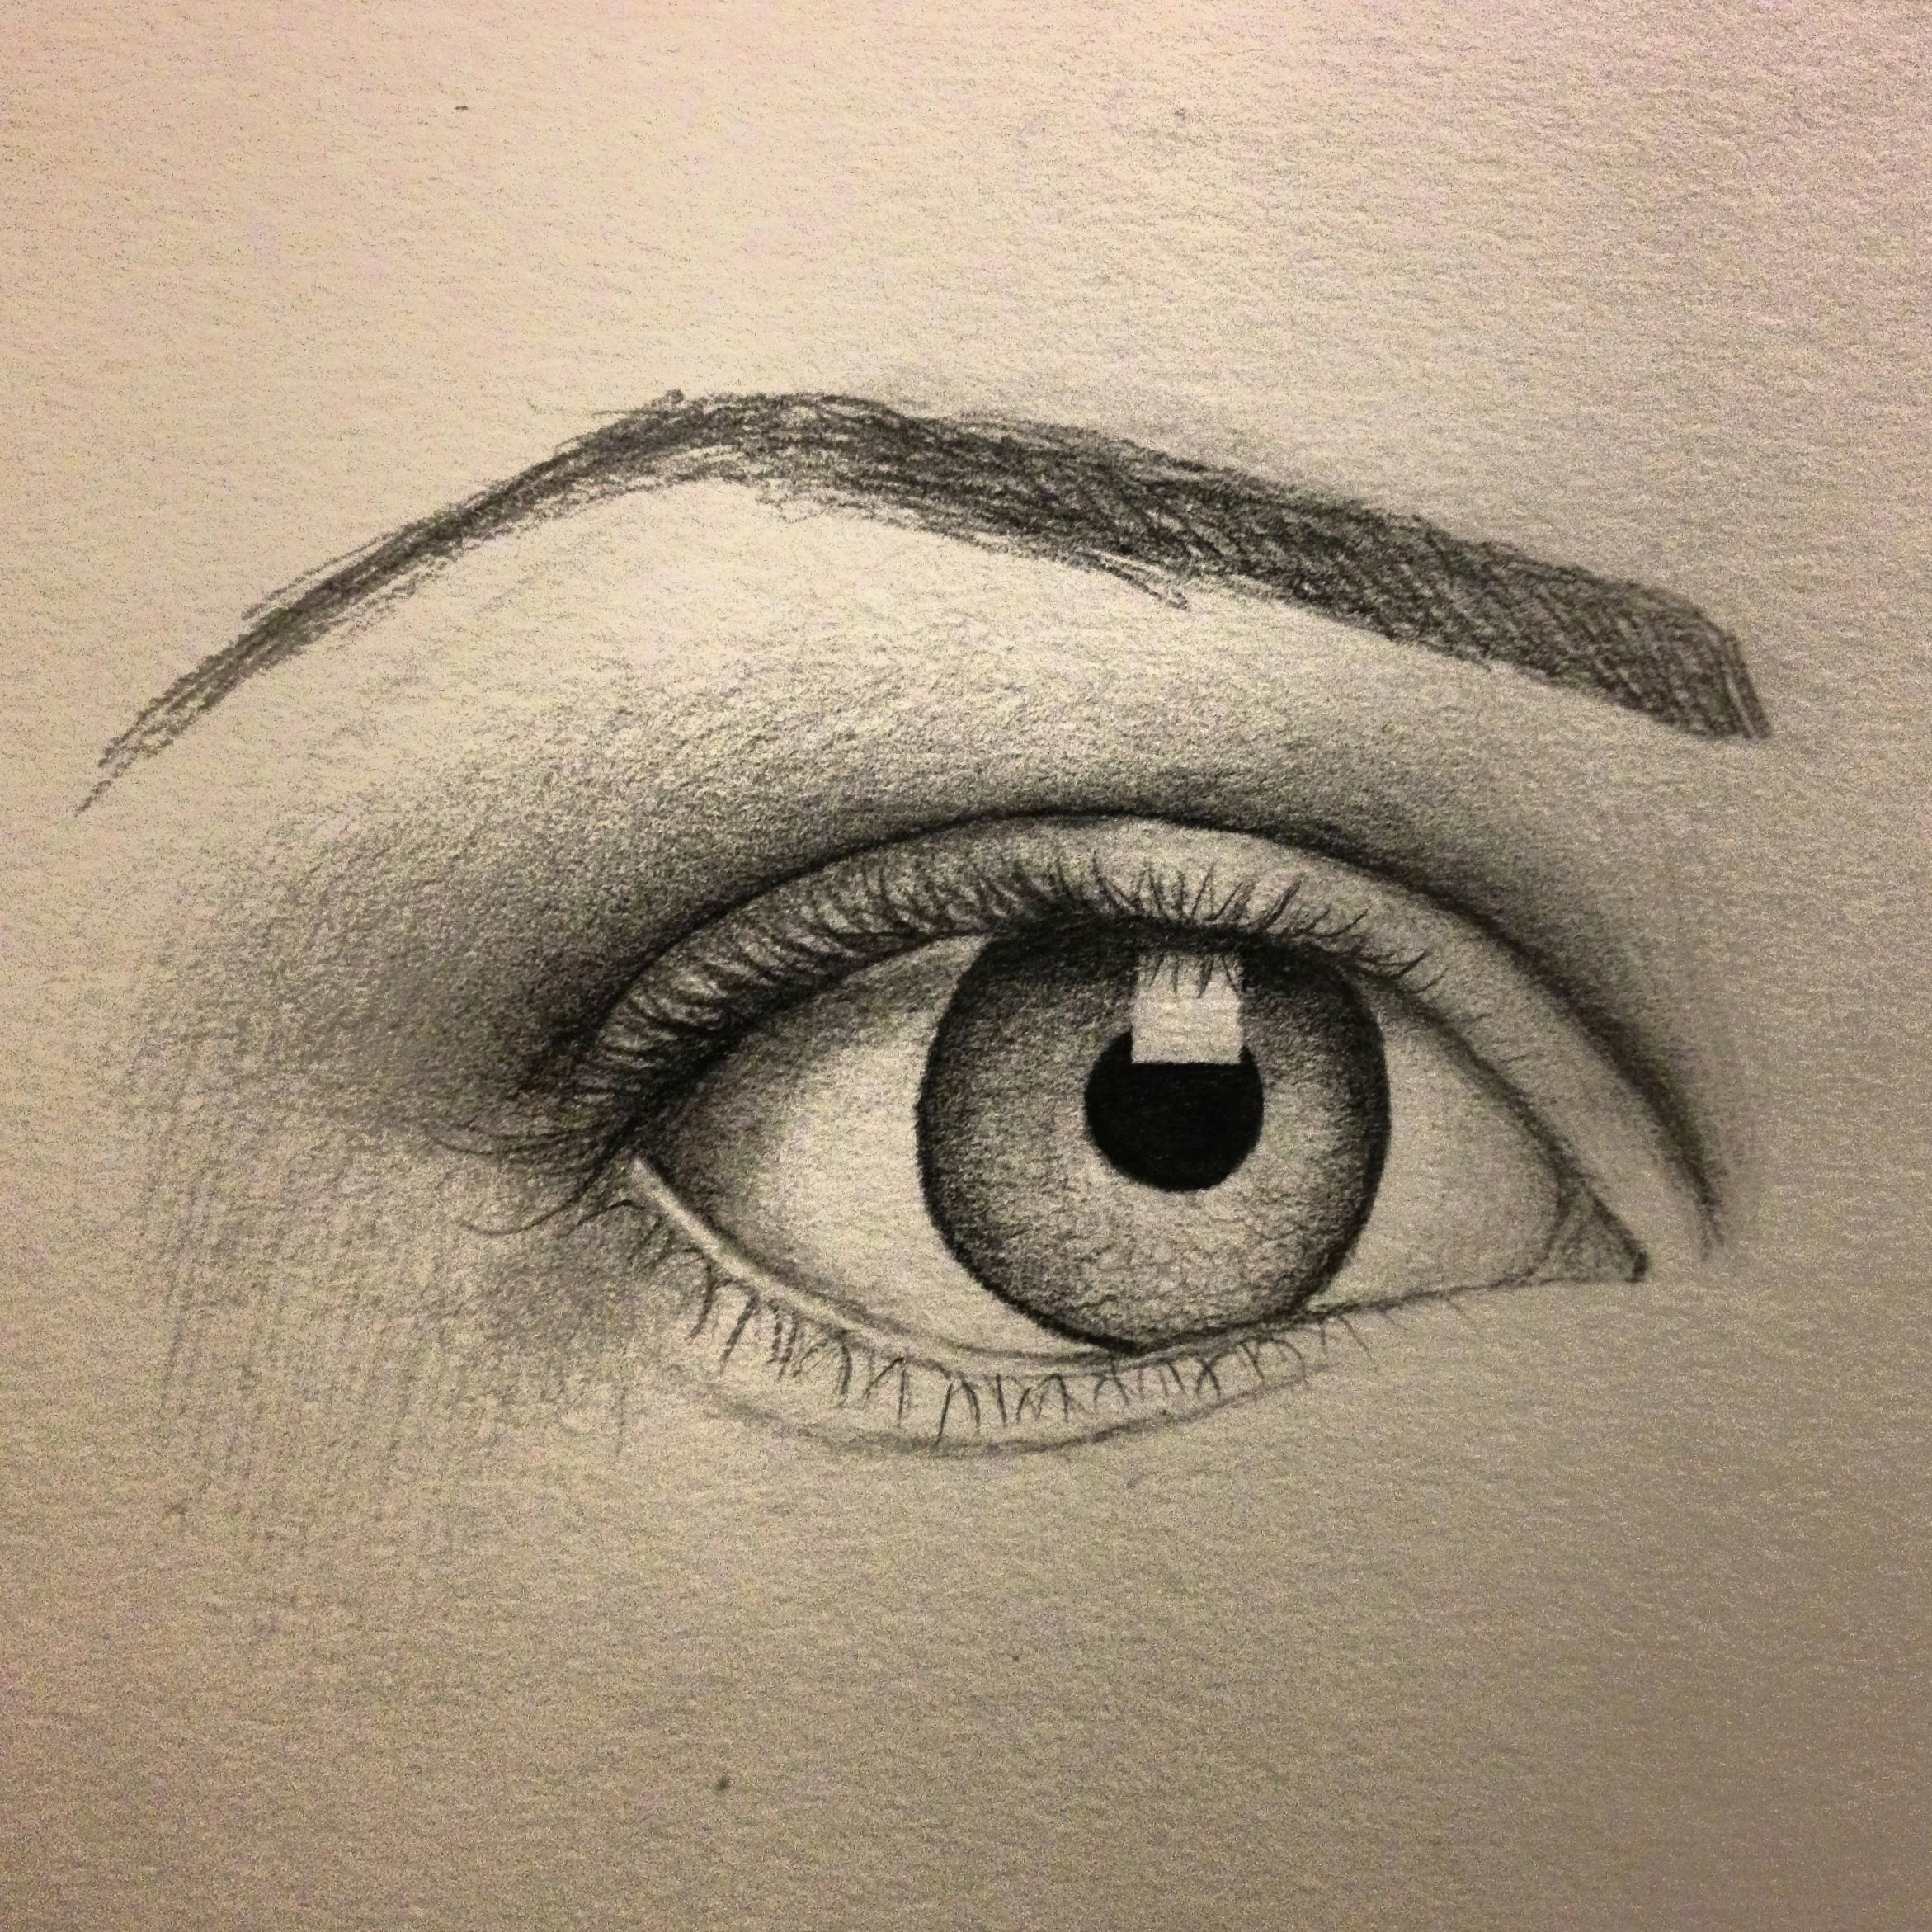 eye sketch artist pamela white